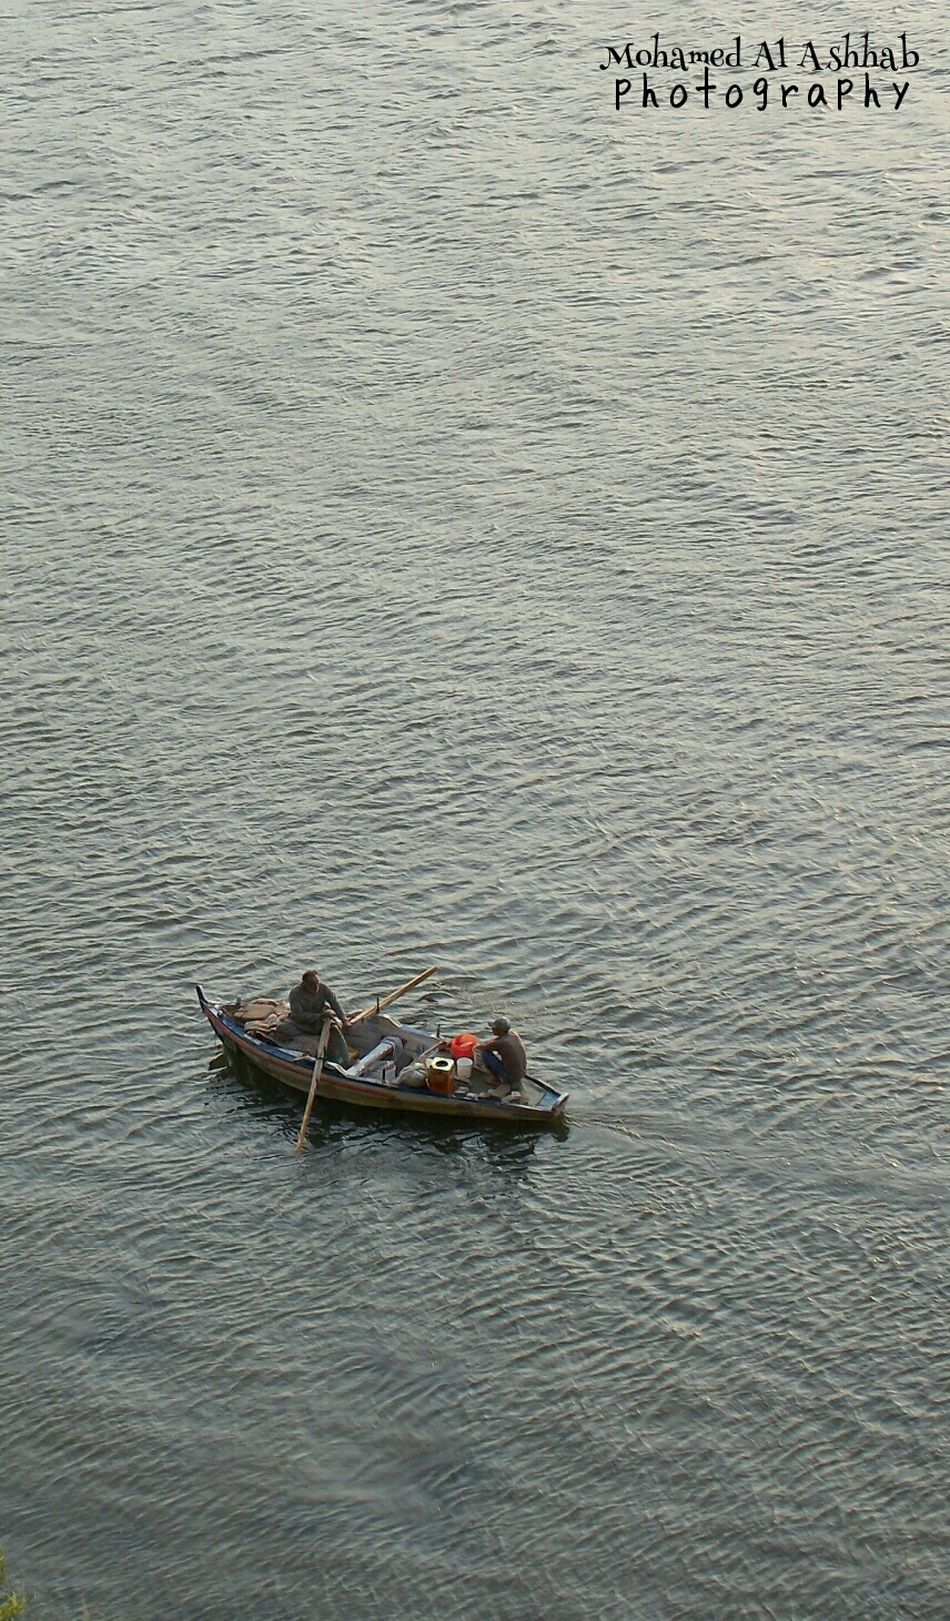 Nile_view Nilo Everyday Life In Cairo Egypt